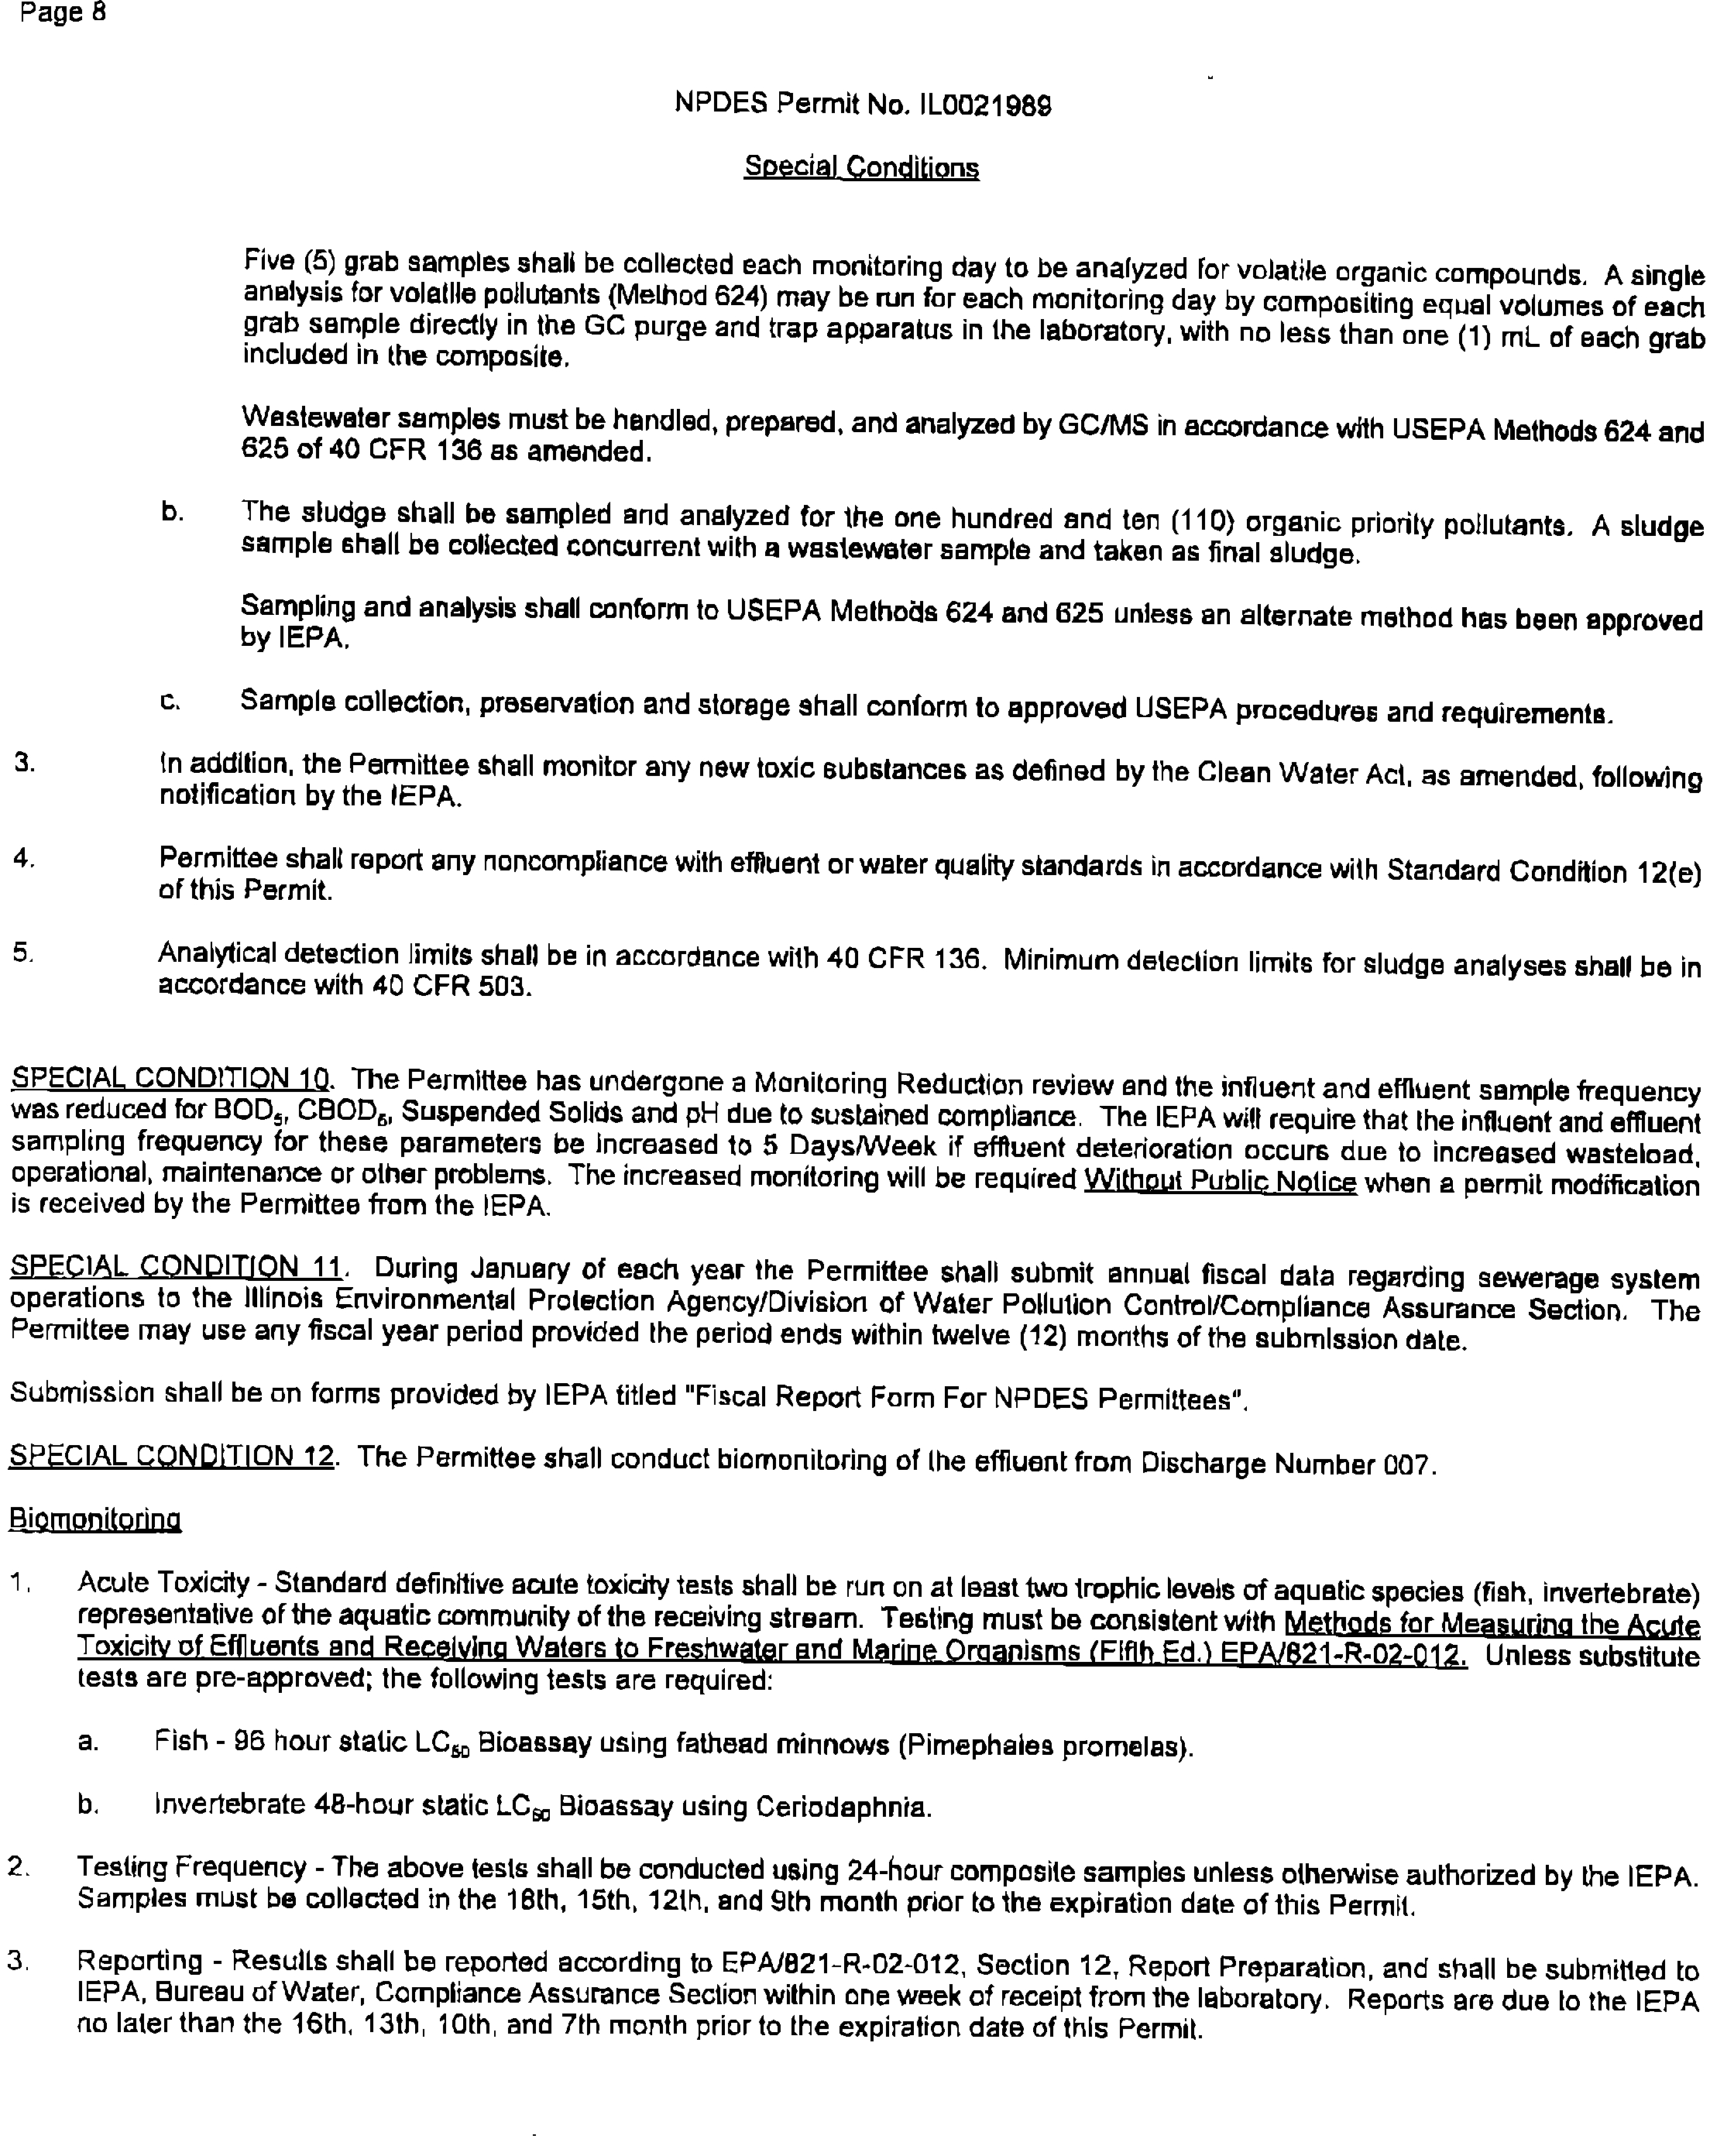 Microsoft Word - TECHNICAL SUPPORT DOCUMENT, Final 8-13-08 doc